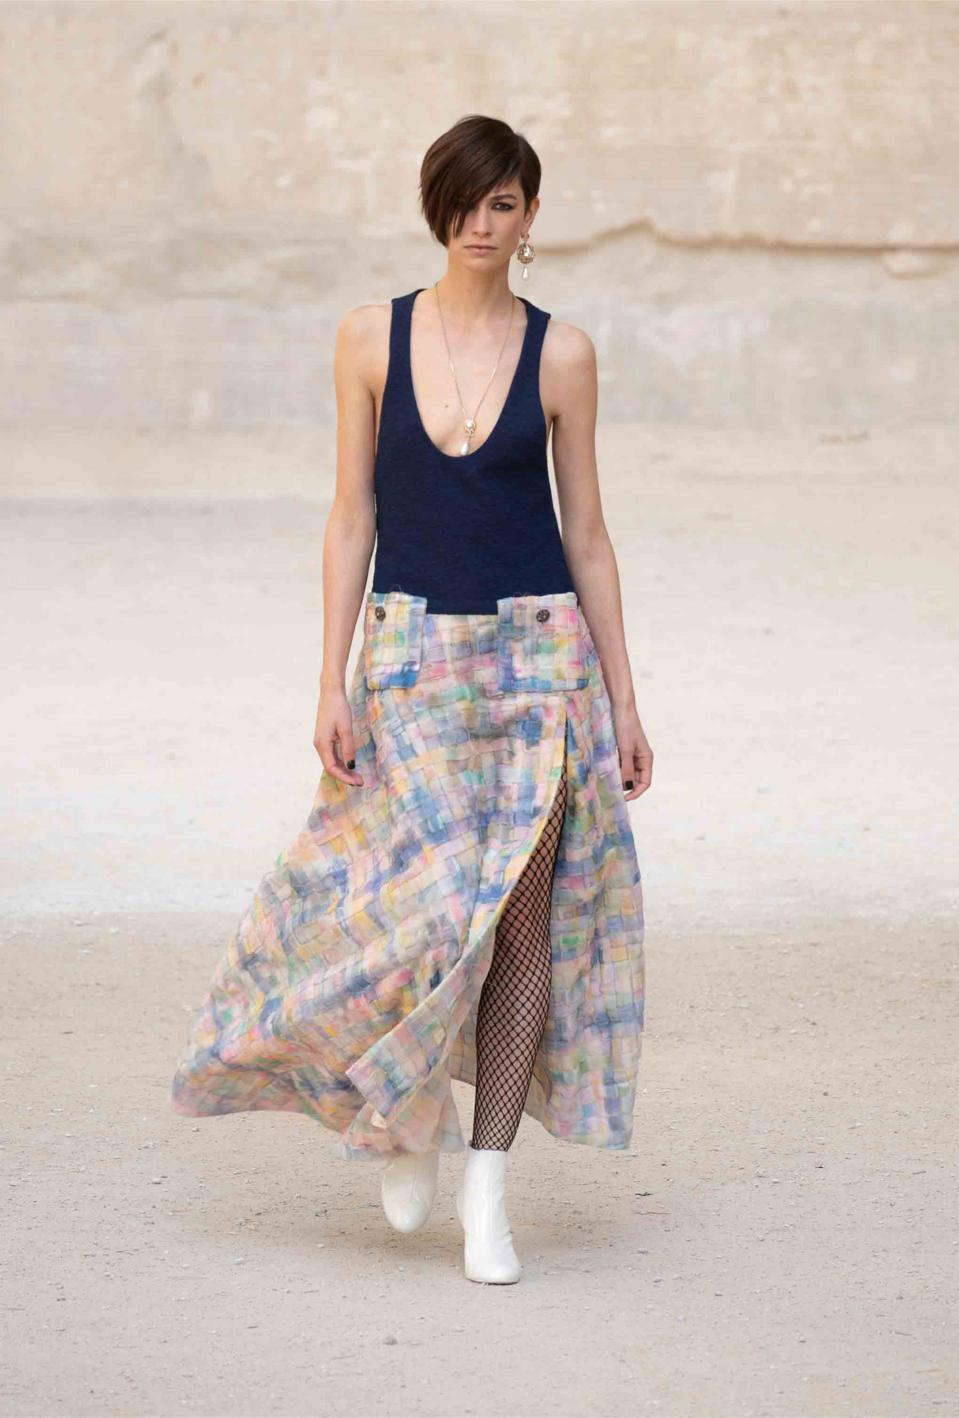 Louise de Chevigny, contrast and watercolors skirt